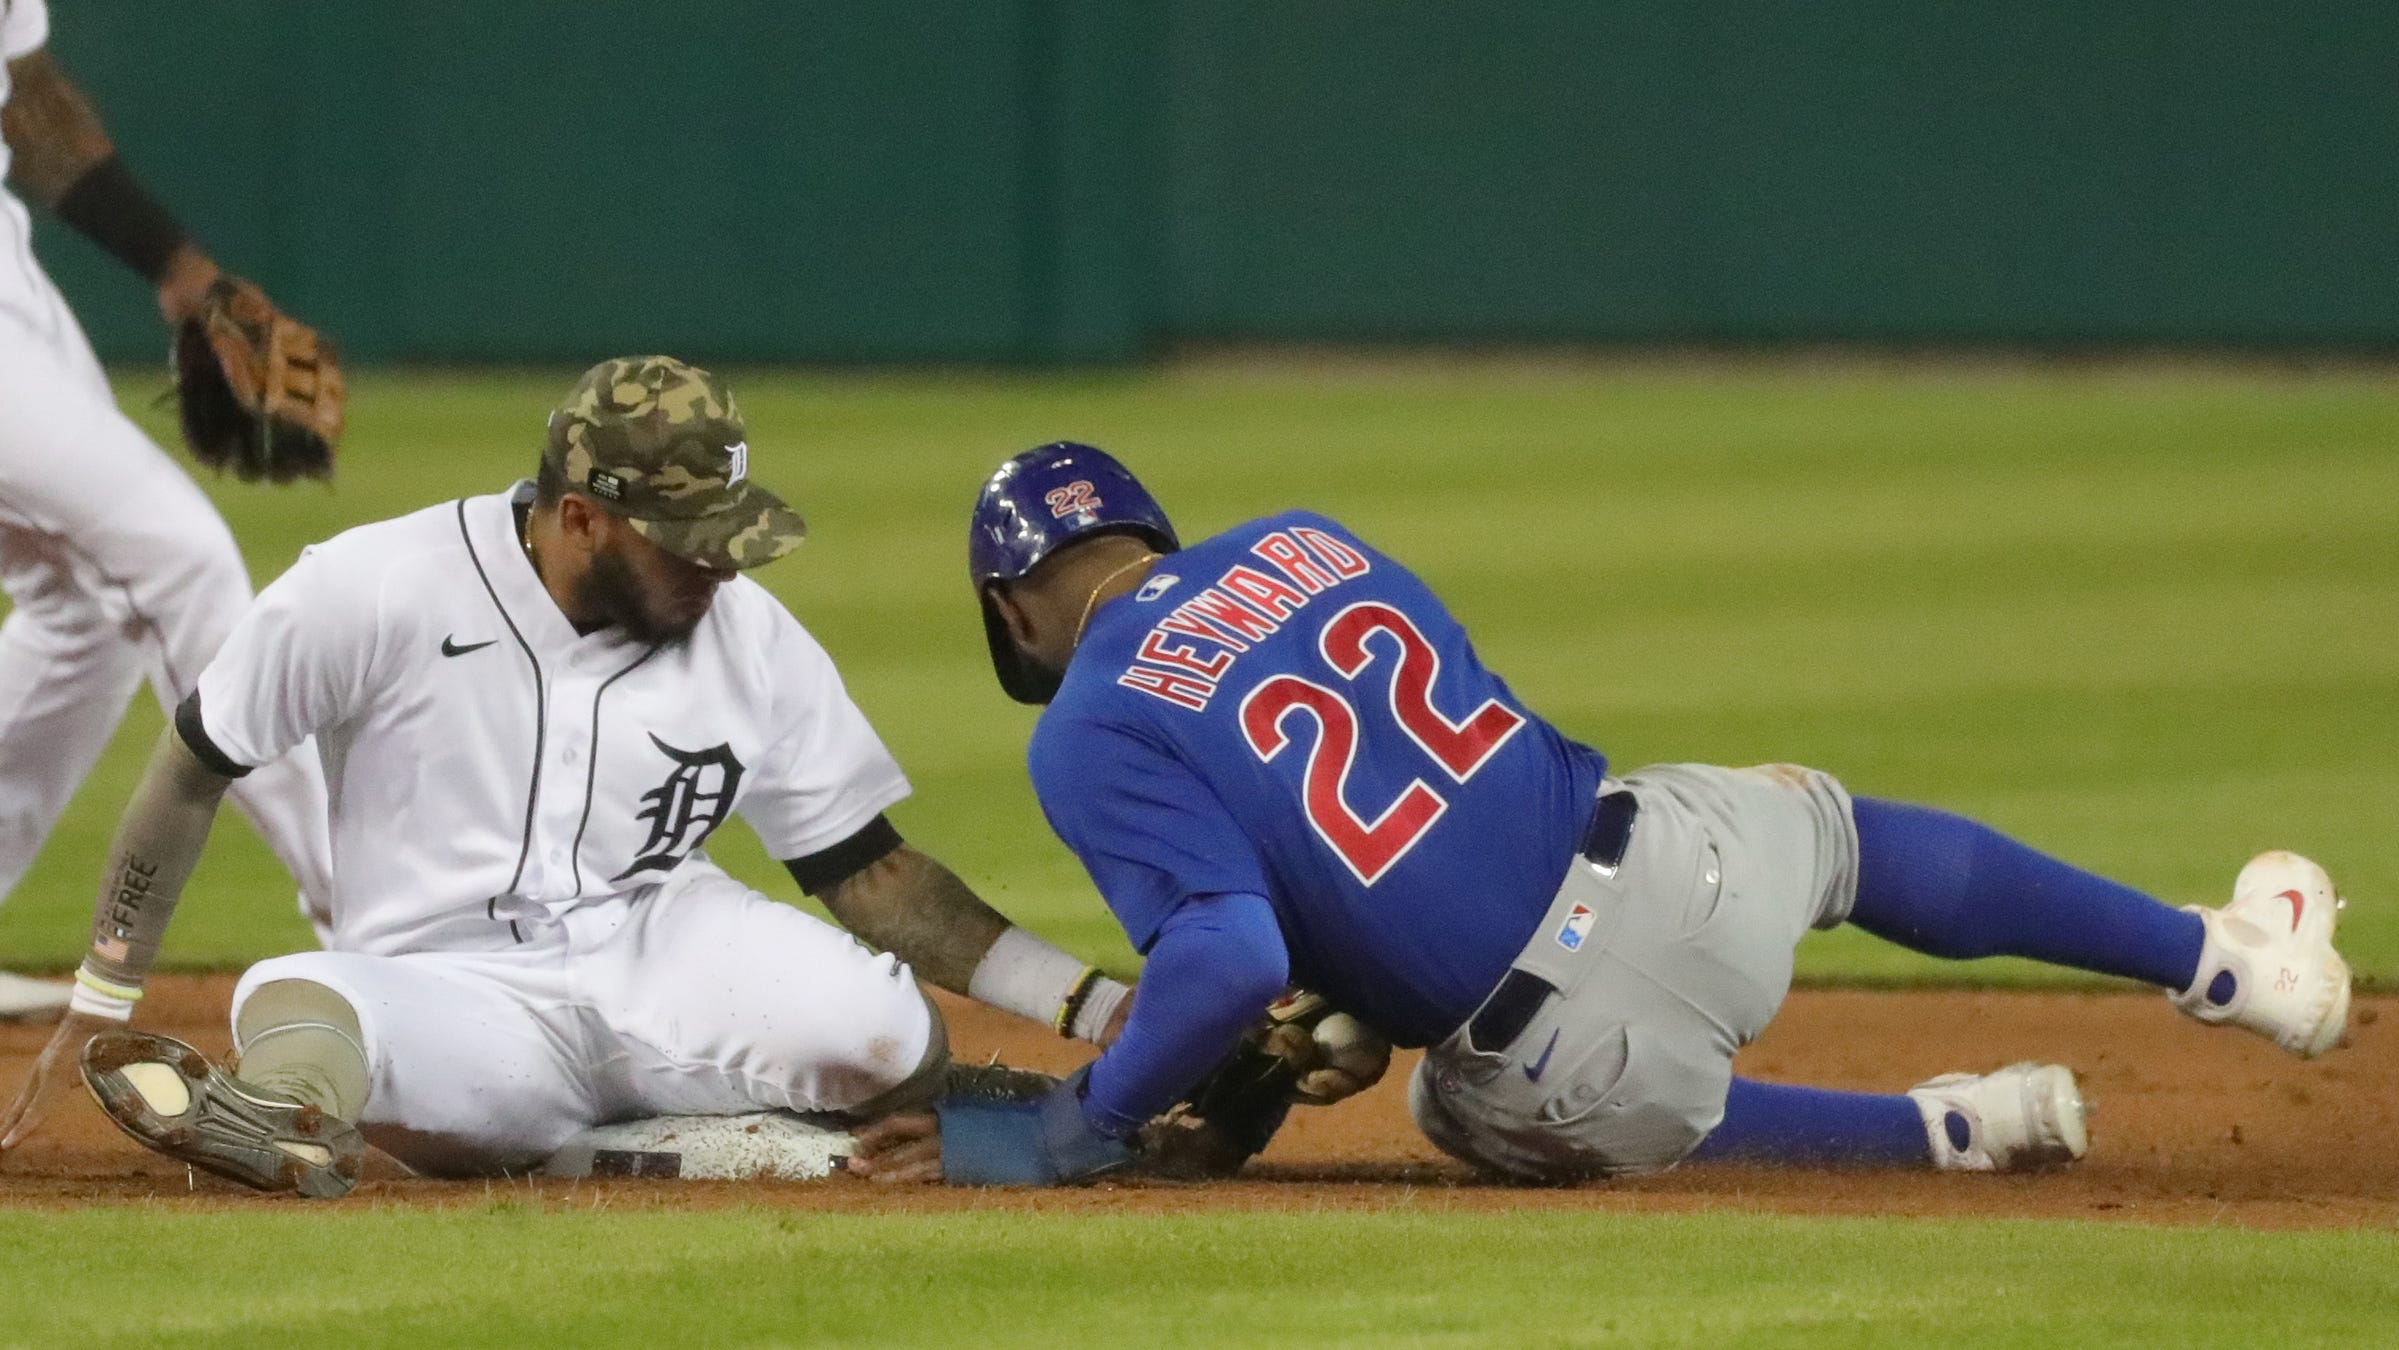 Tigers second baseman Harold Castro tags out Cubs right fielder Jason Heyward during the ninth inning of the Tigers' 4-2 loss on Friday, May 14, 2021, at Comerica Park.